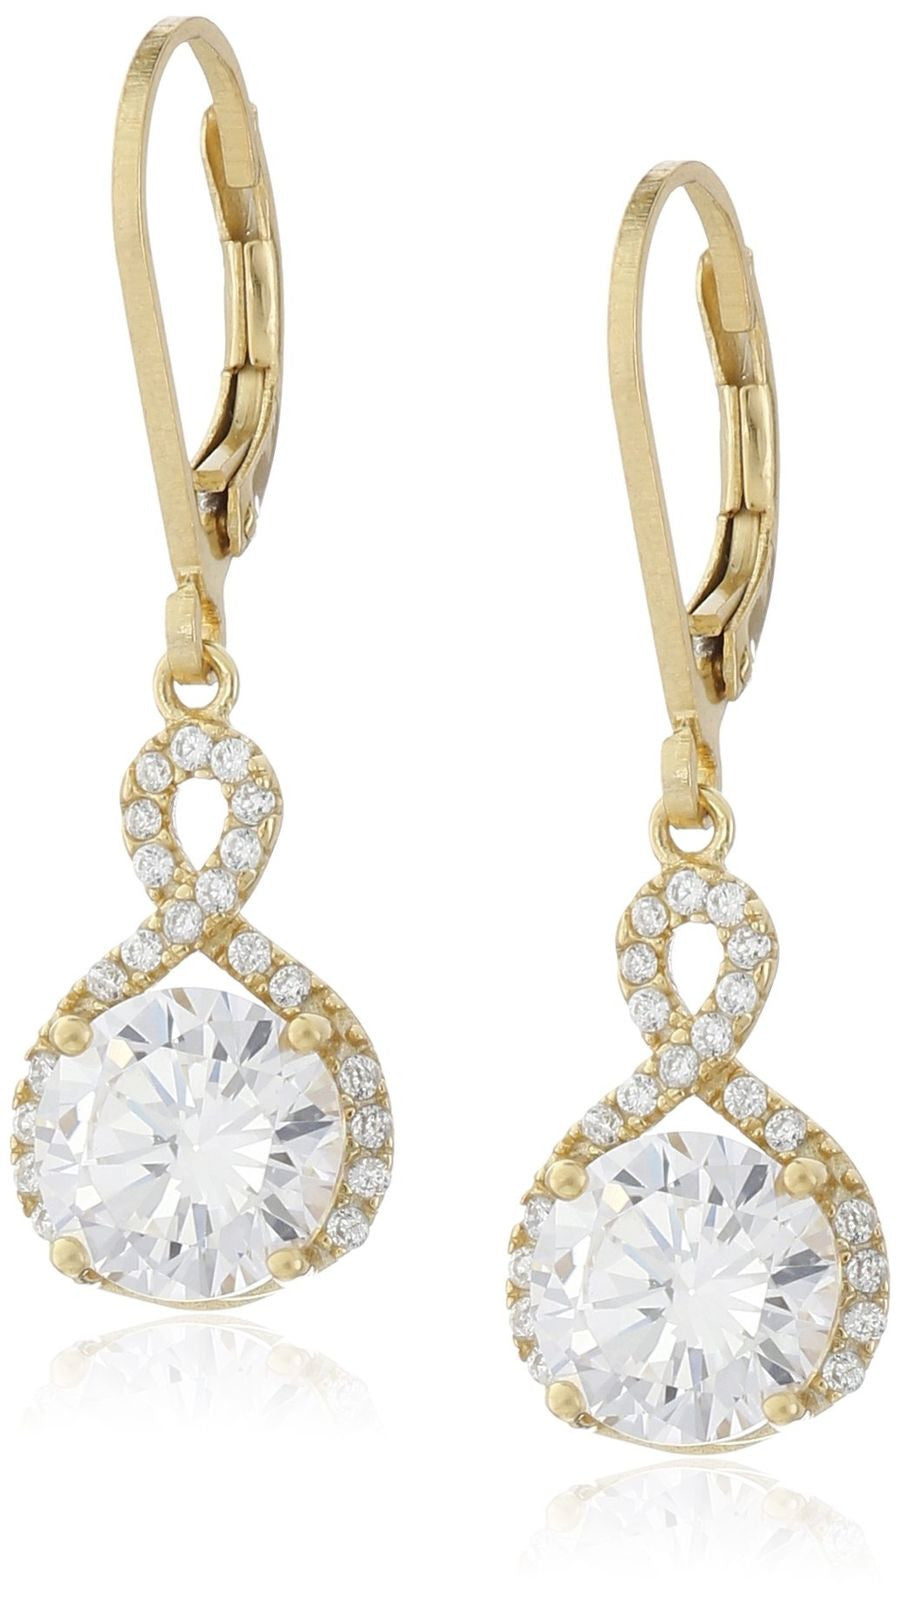 Swarovski Infinity Crystal Drop Earrings - Gold